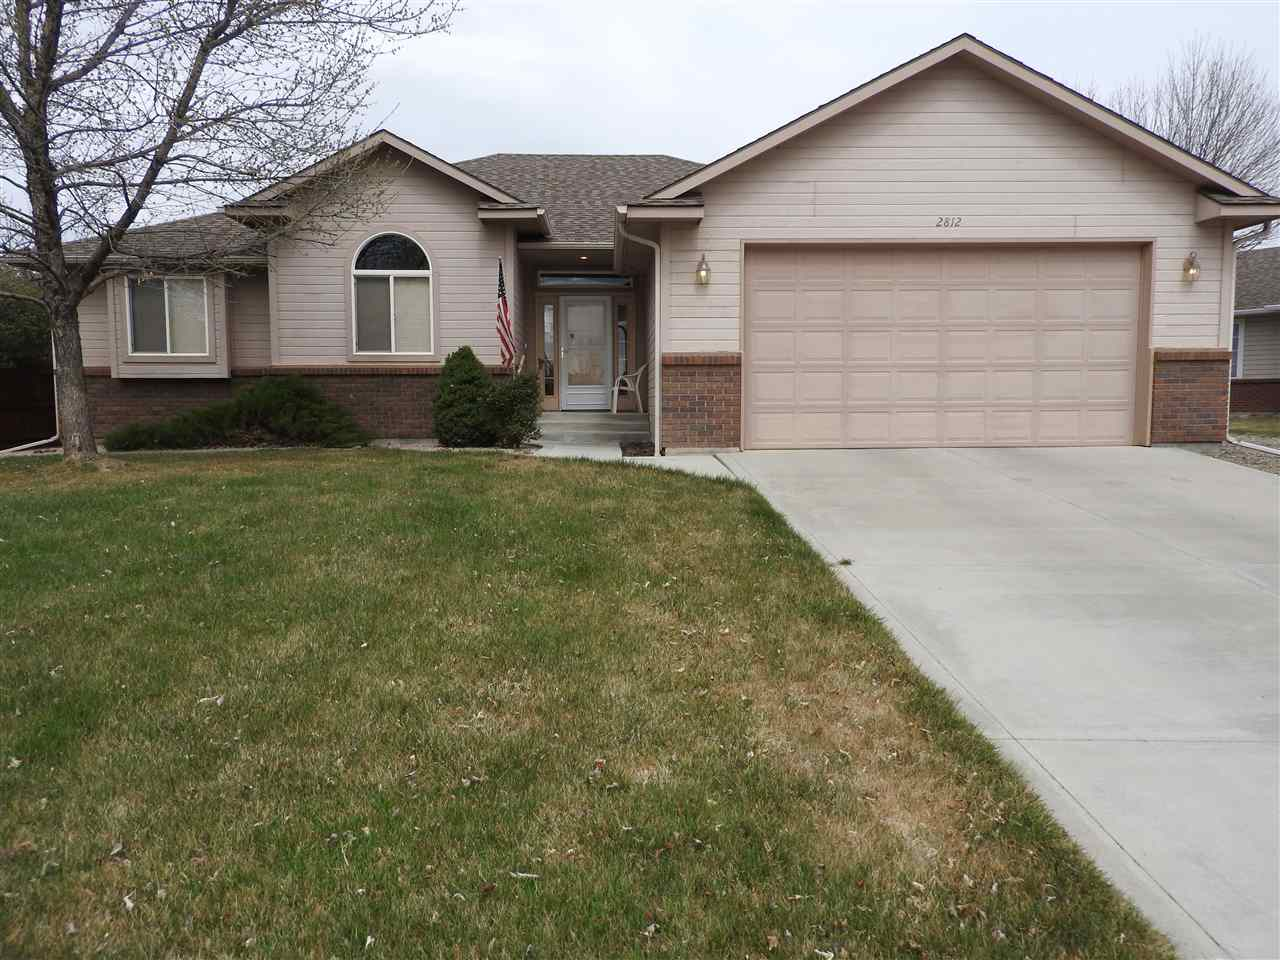 2812 Eldora Court, Grand Junction, CO 81506